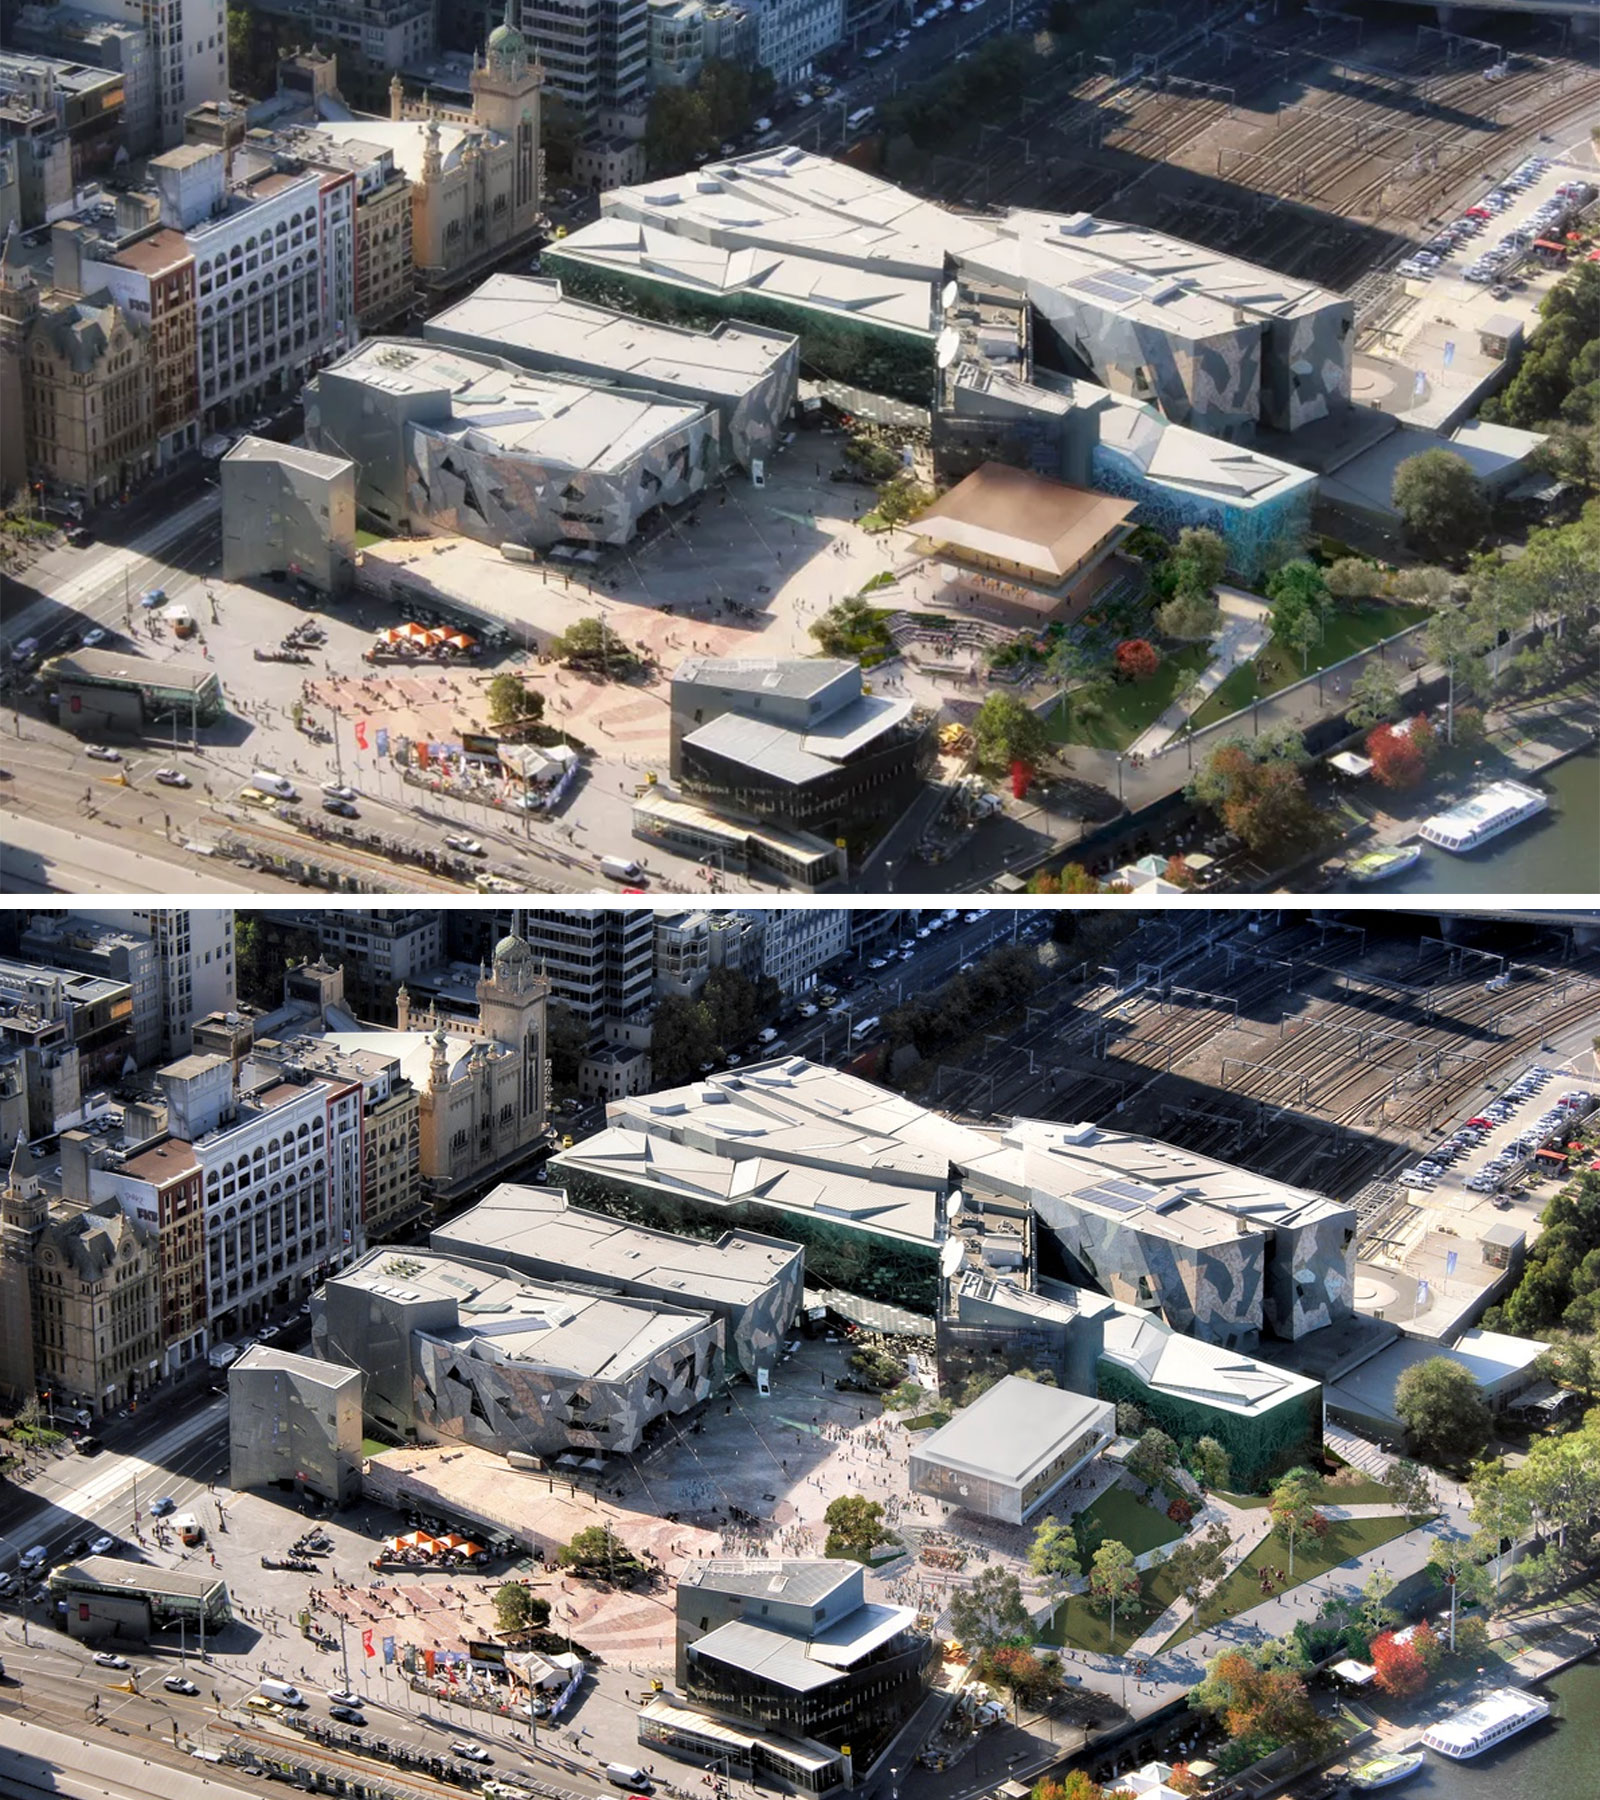 The original design (above) for the new Apple store attracted 800 submissions to council. The new design (below) outlays a floating box which will be covered in solar panels.